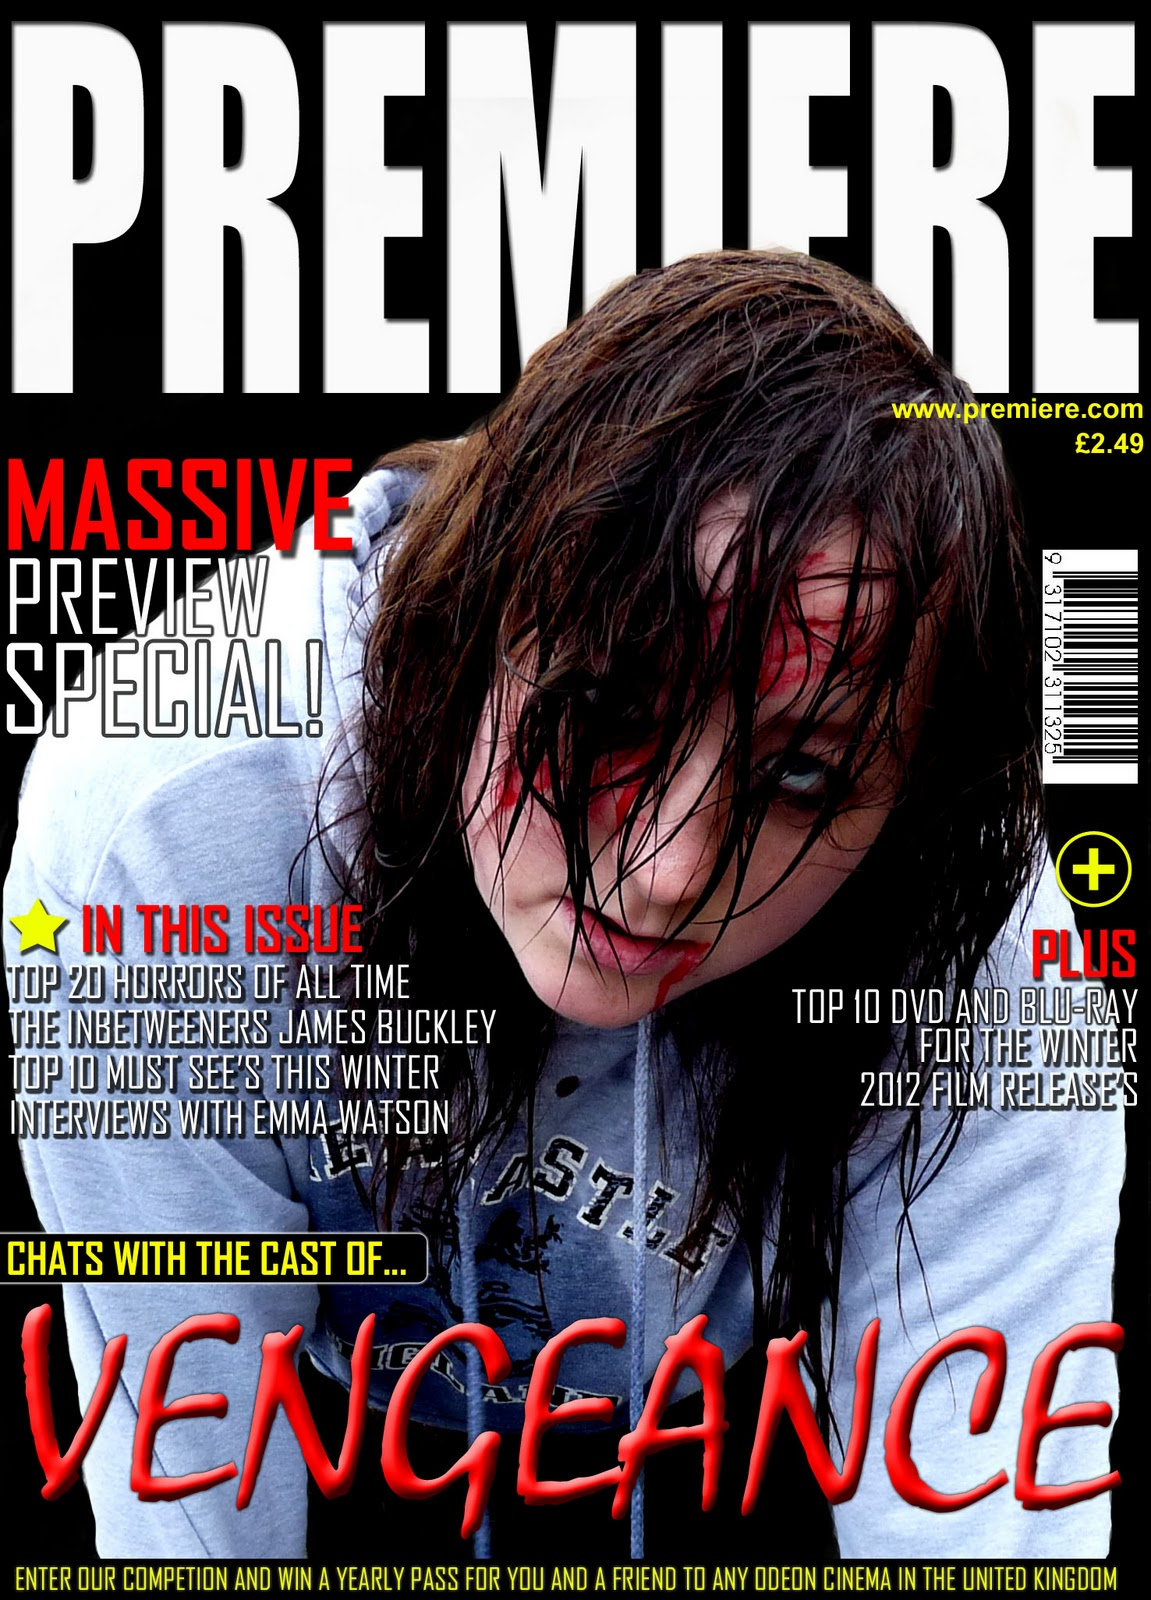 shaun liddle  examples of horror magazines